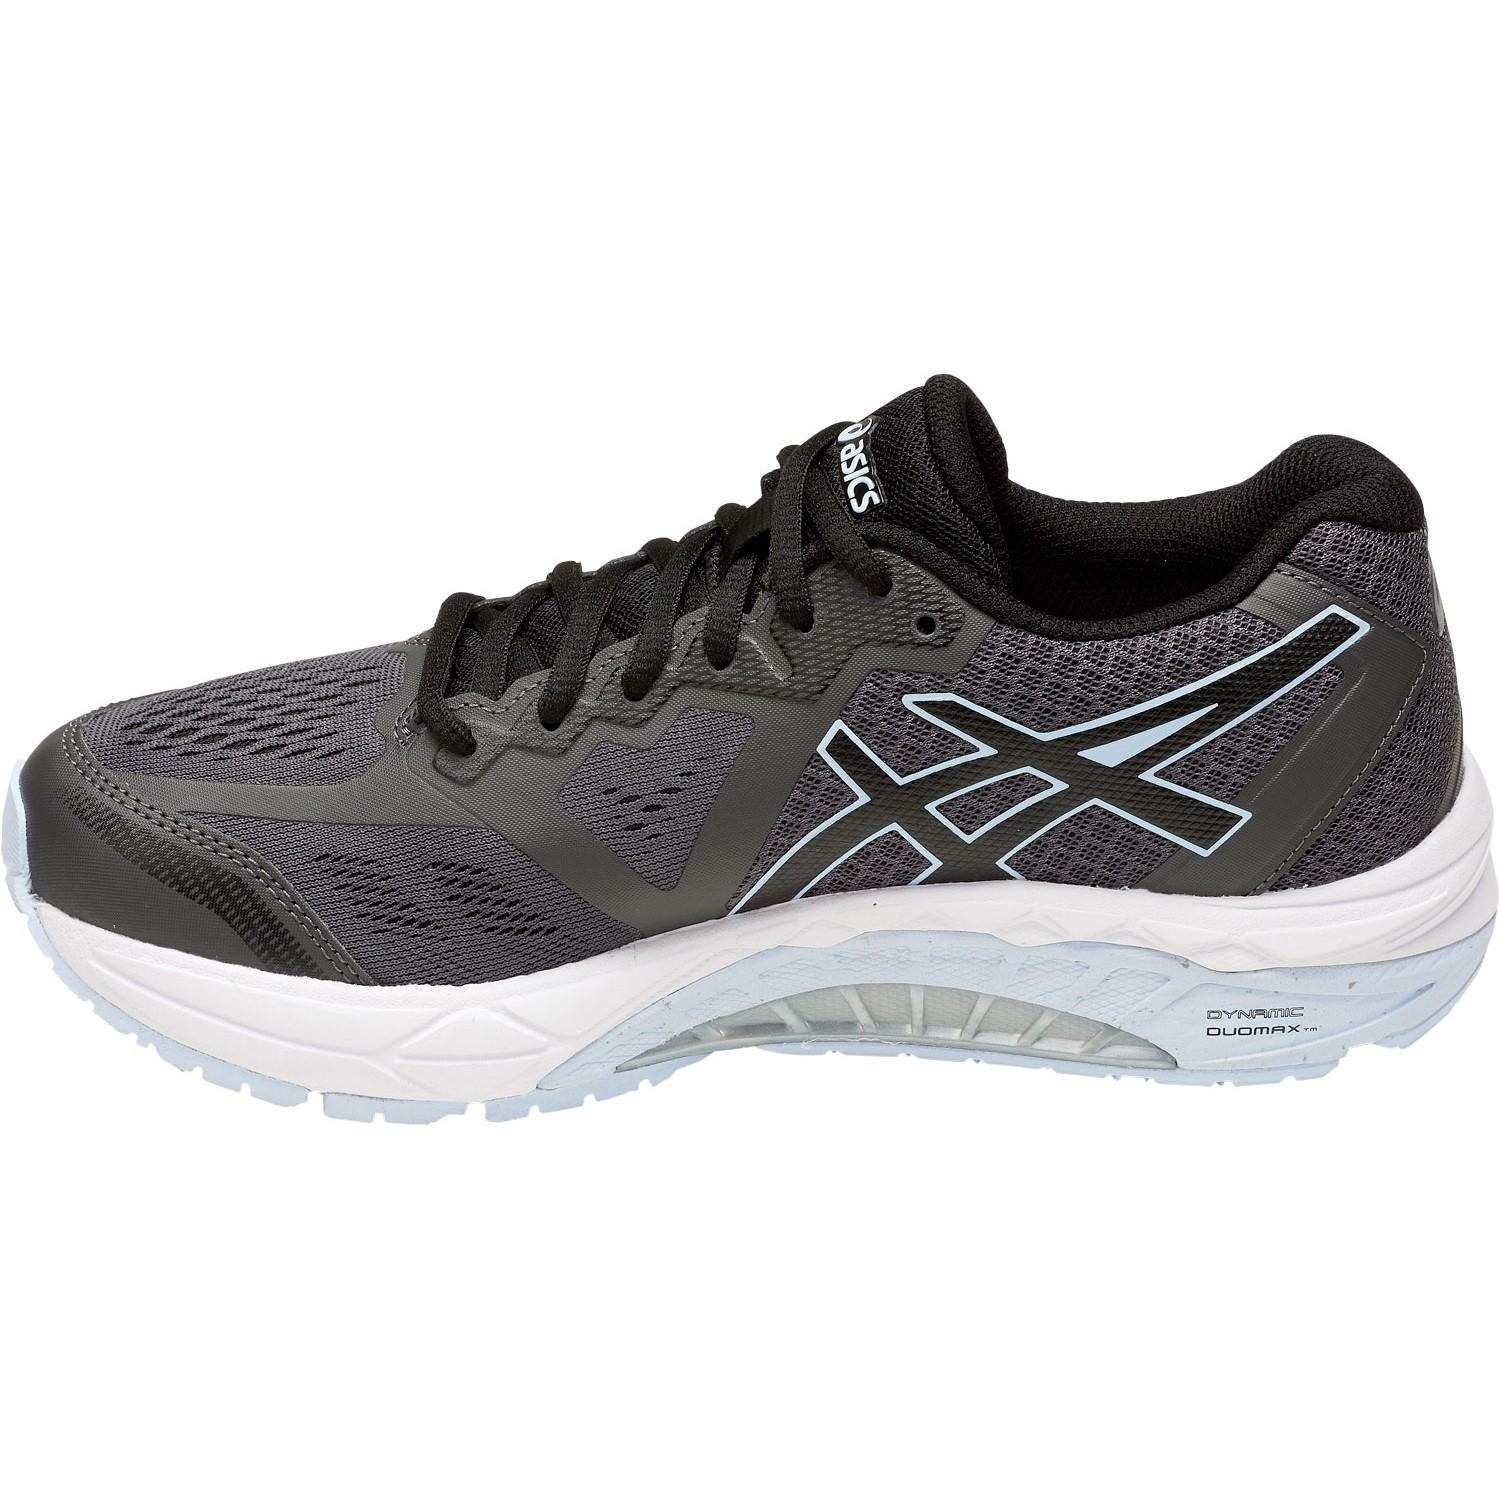 c772757b5bb7a Asics Gel Foundation 13 - Womens Running Shoes